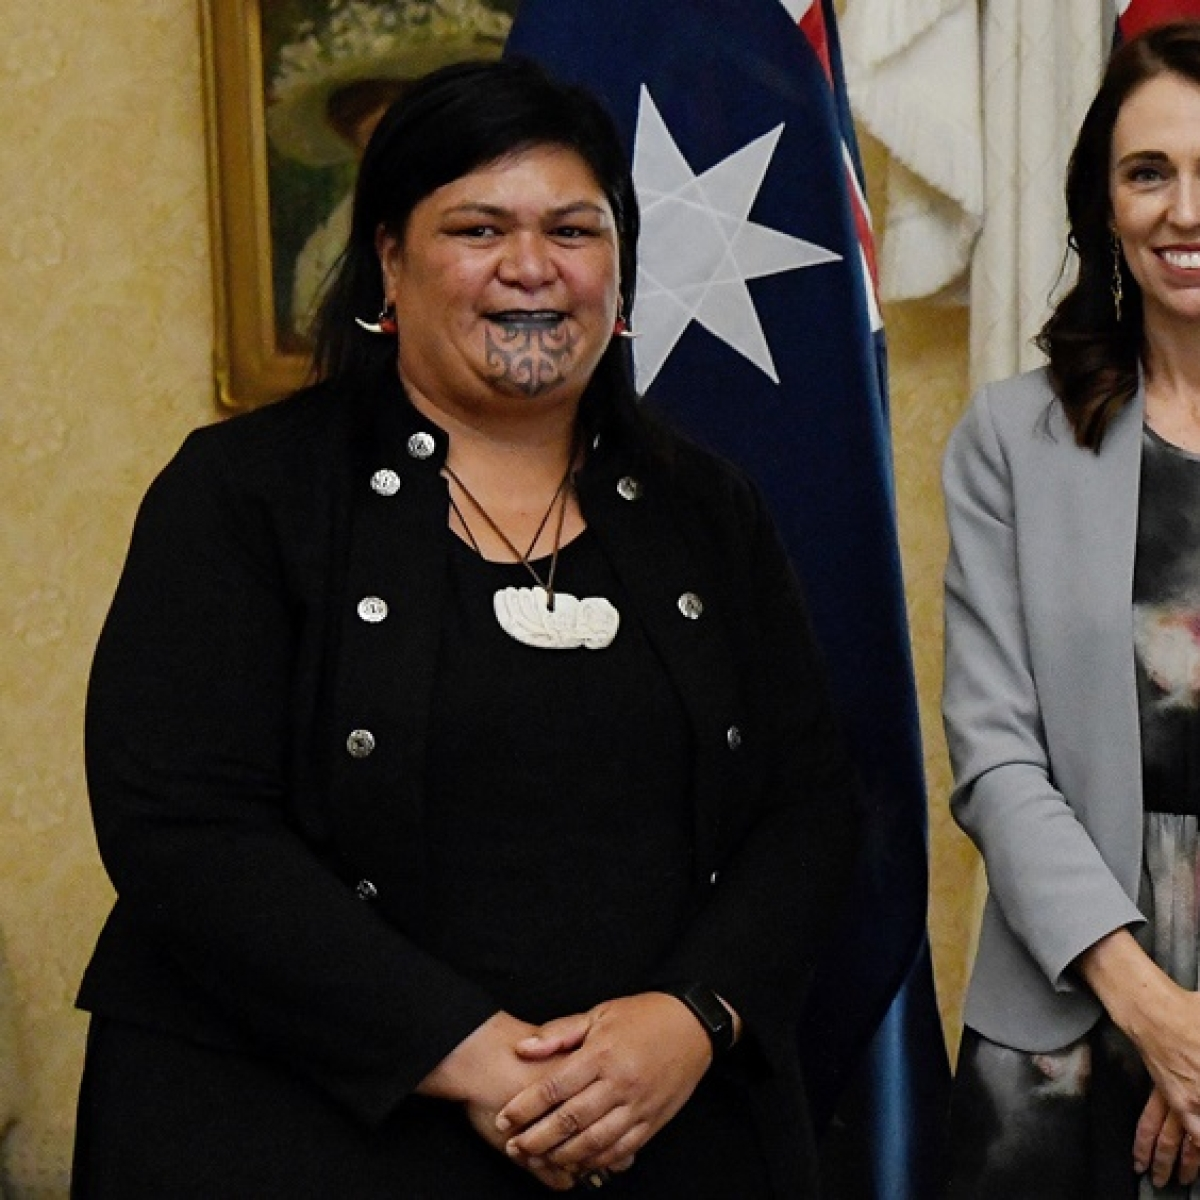 Who is Jacinda Arden's new tattooed Foreign Minister?